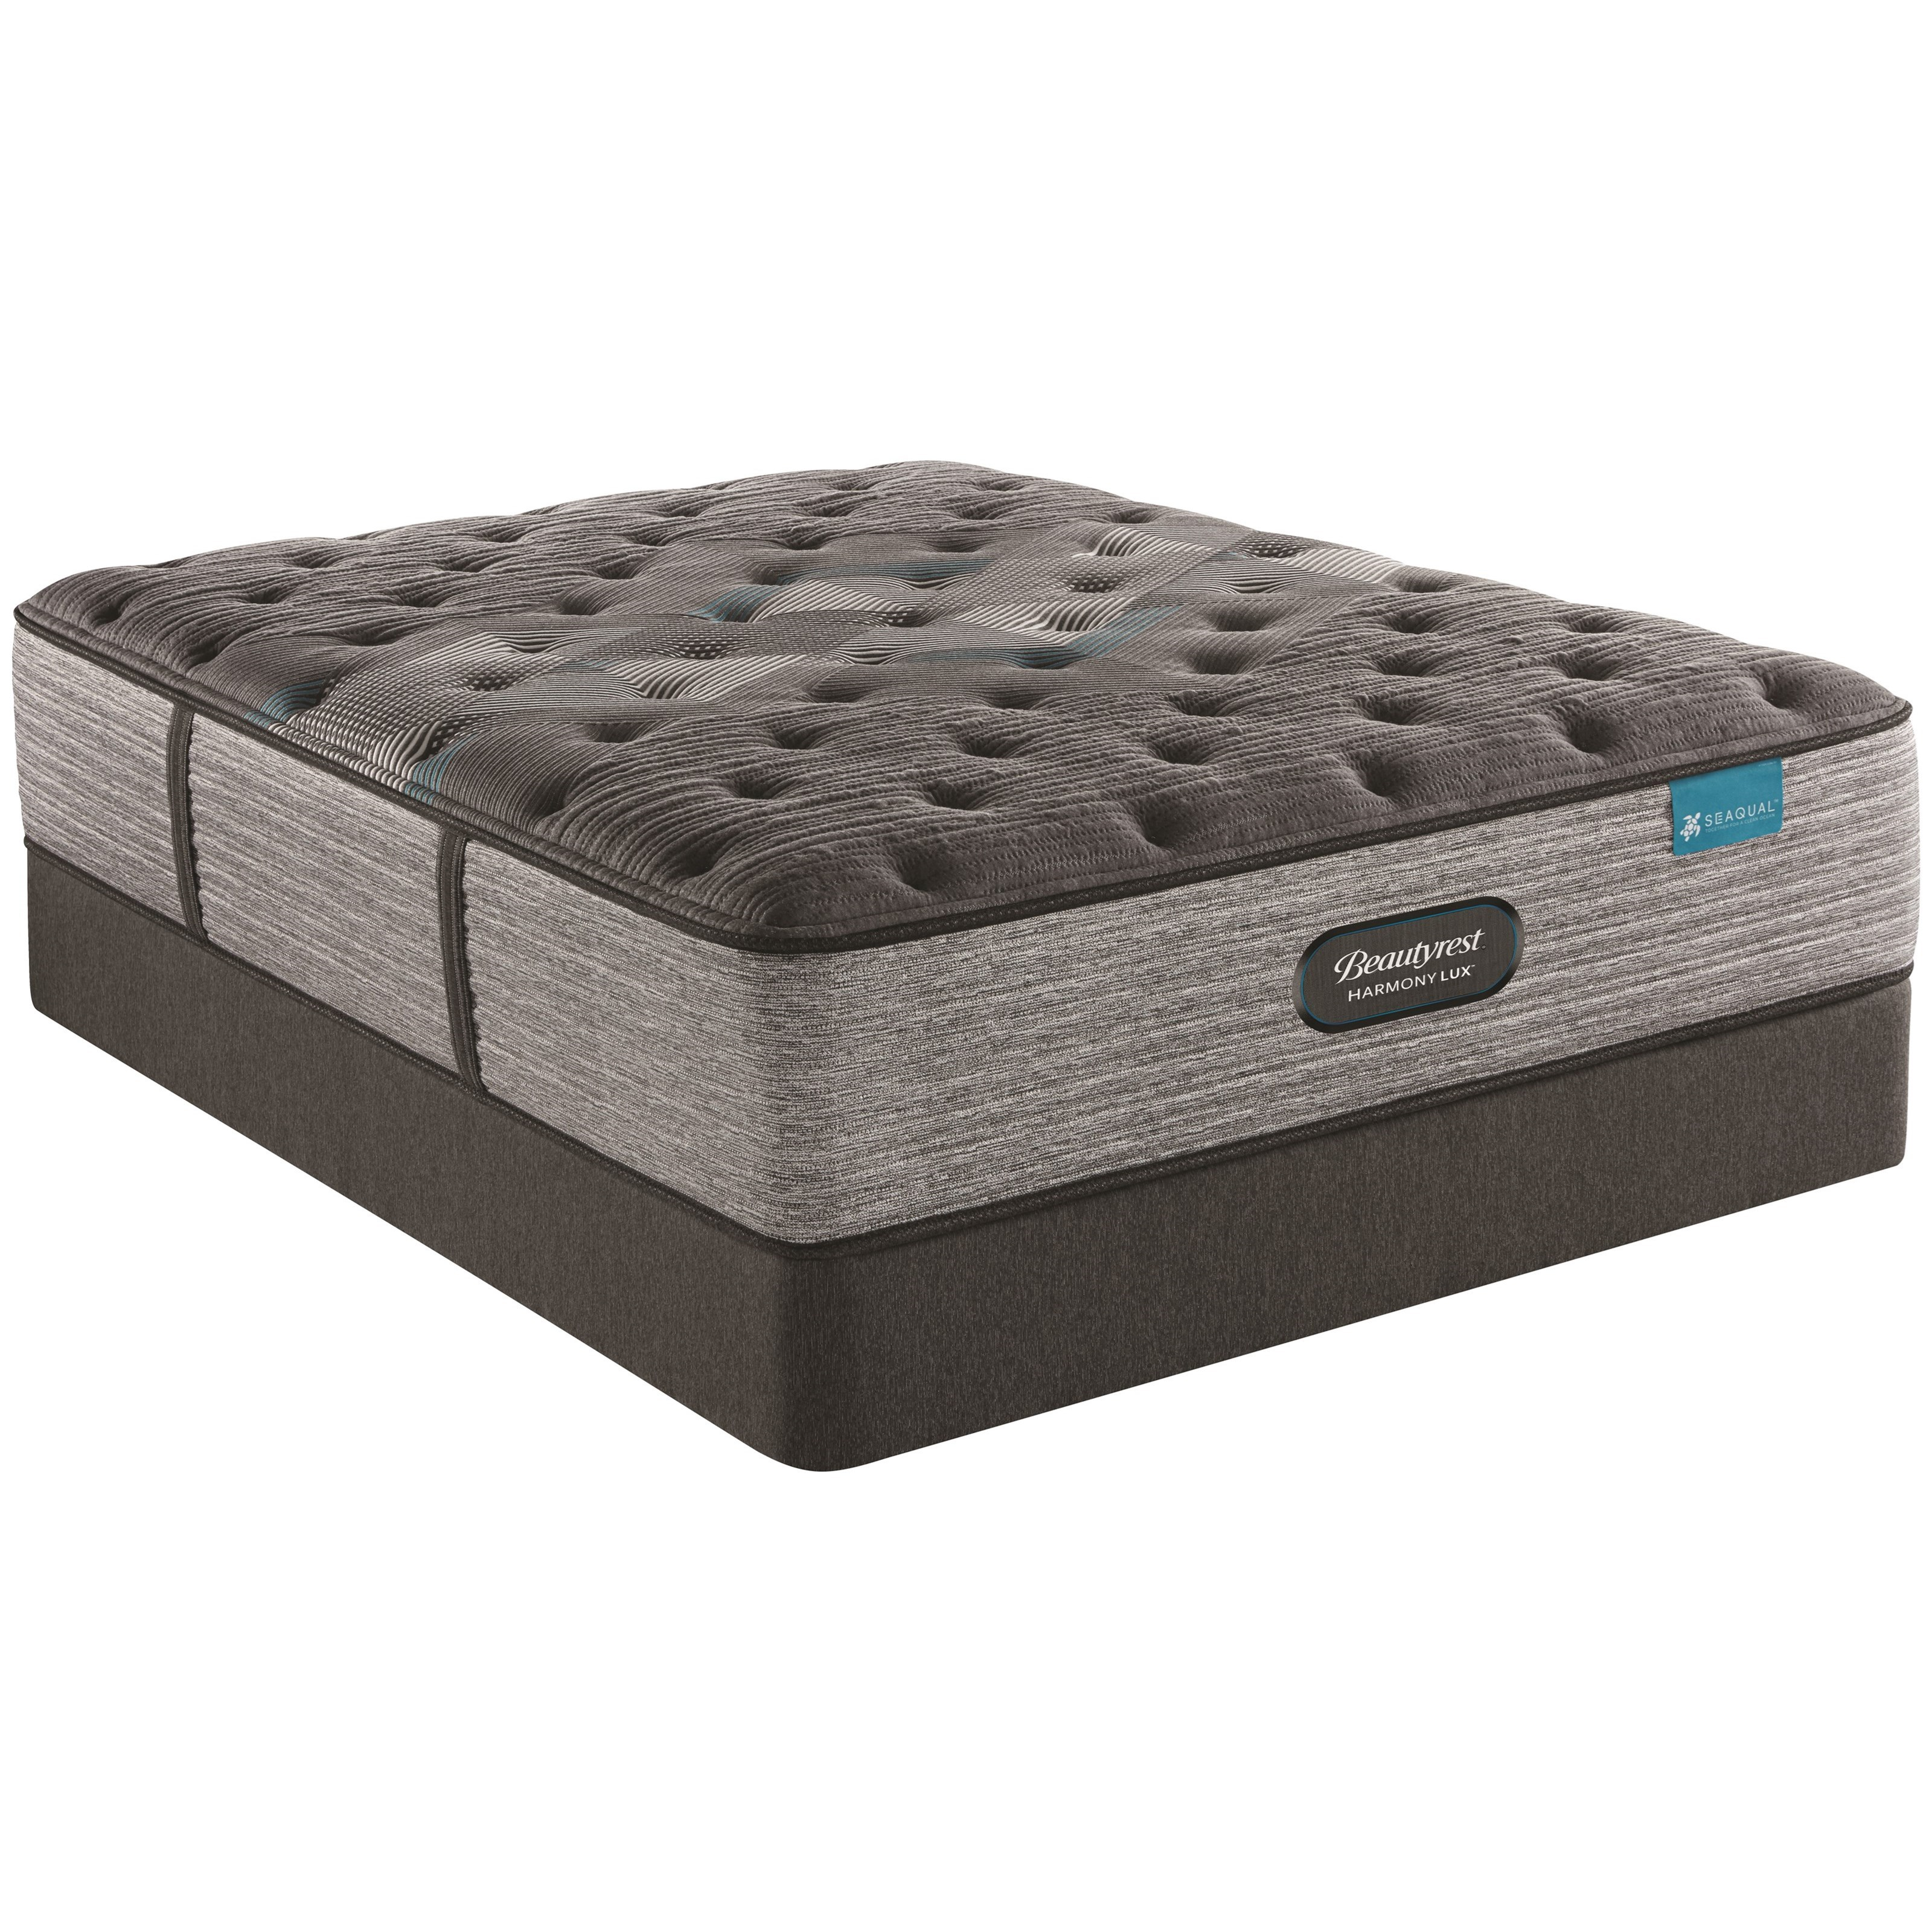 "Twin 14 3/4"" Med Premium Mattress Set"